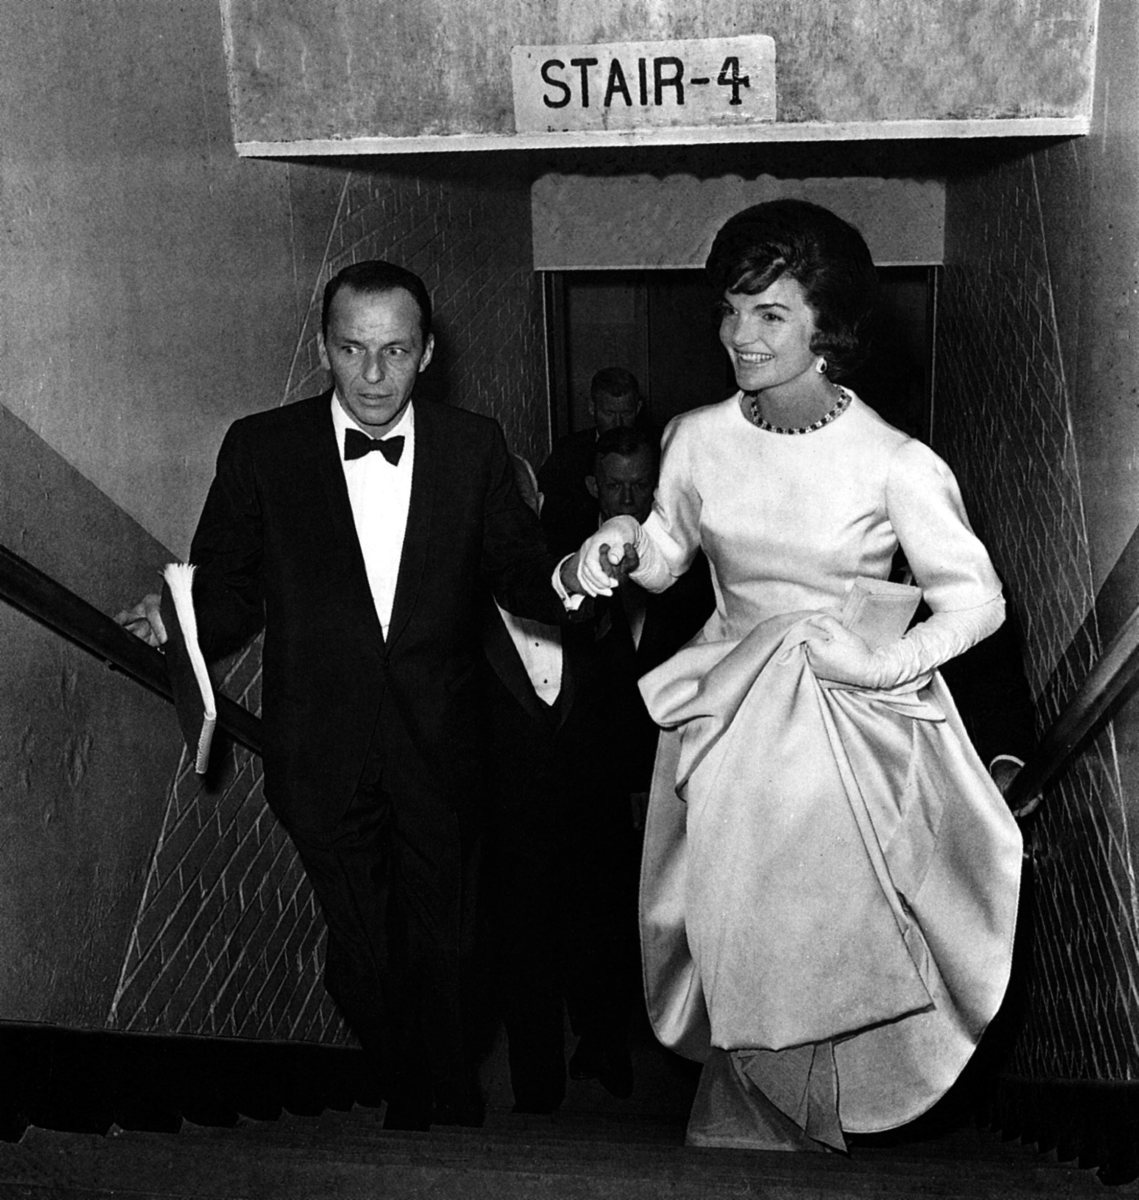 Frank Sinatra escorting Jacqueline Kennedy to her box at a gala, held at the National Guard Armory in Washington DC, the night before the inauguration of President John F. Kennedy